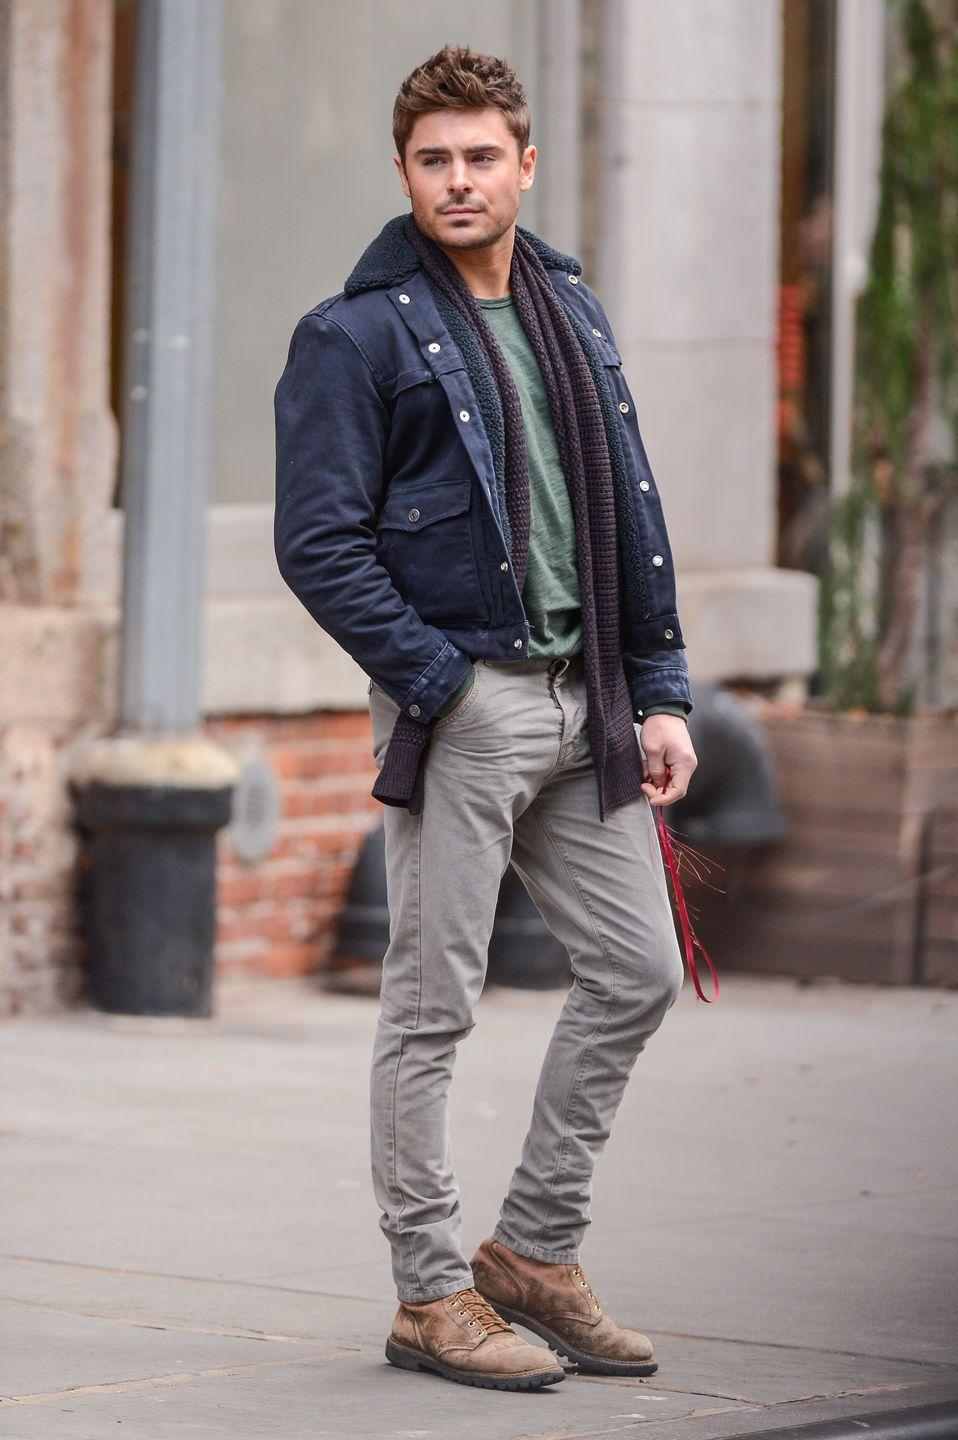 <p>As freakin' fall-ready and cute Zac looks in a scarf, I gotta say—nothing beats shirtless Zac. You're gonna see what I mean in just a sec. </p>